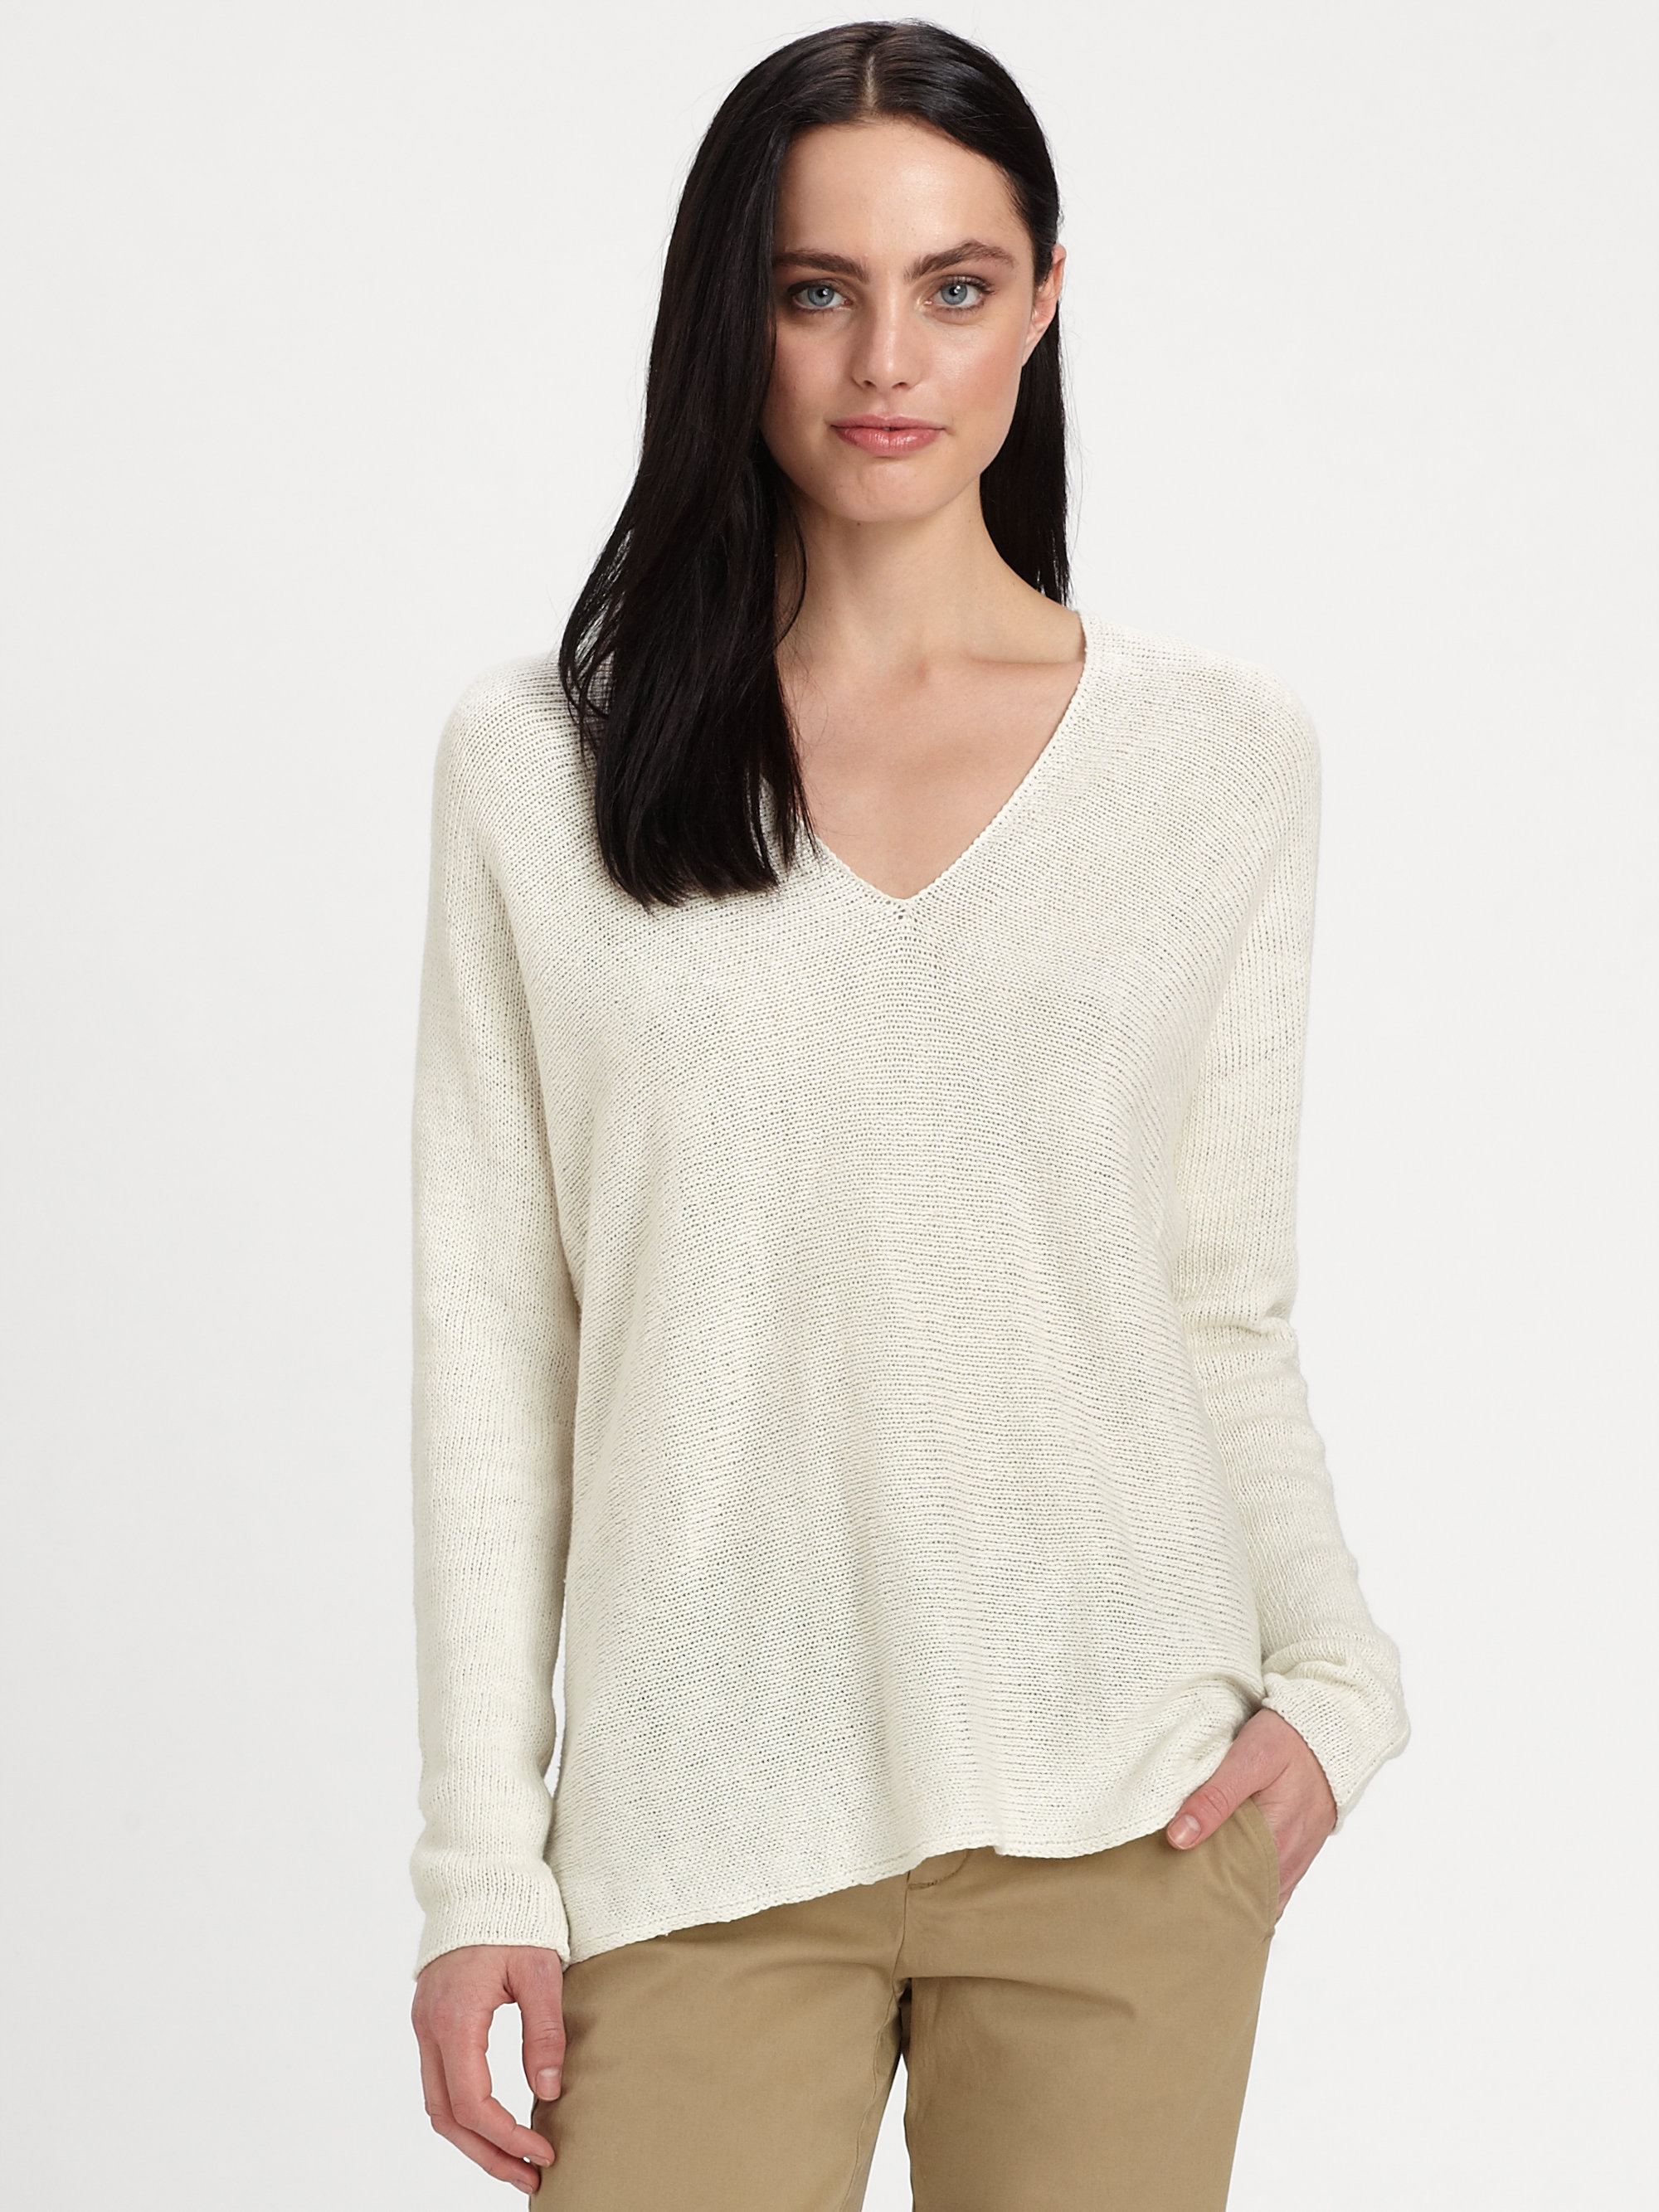 Vince Linen Sweater In White Off White Lyst